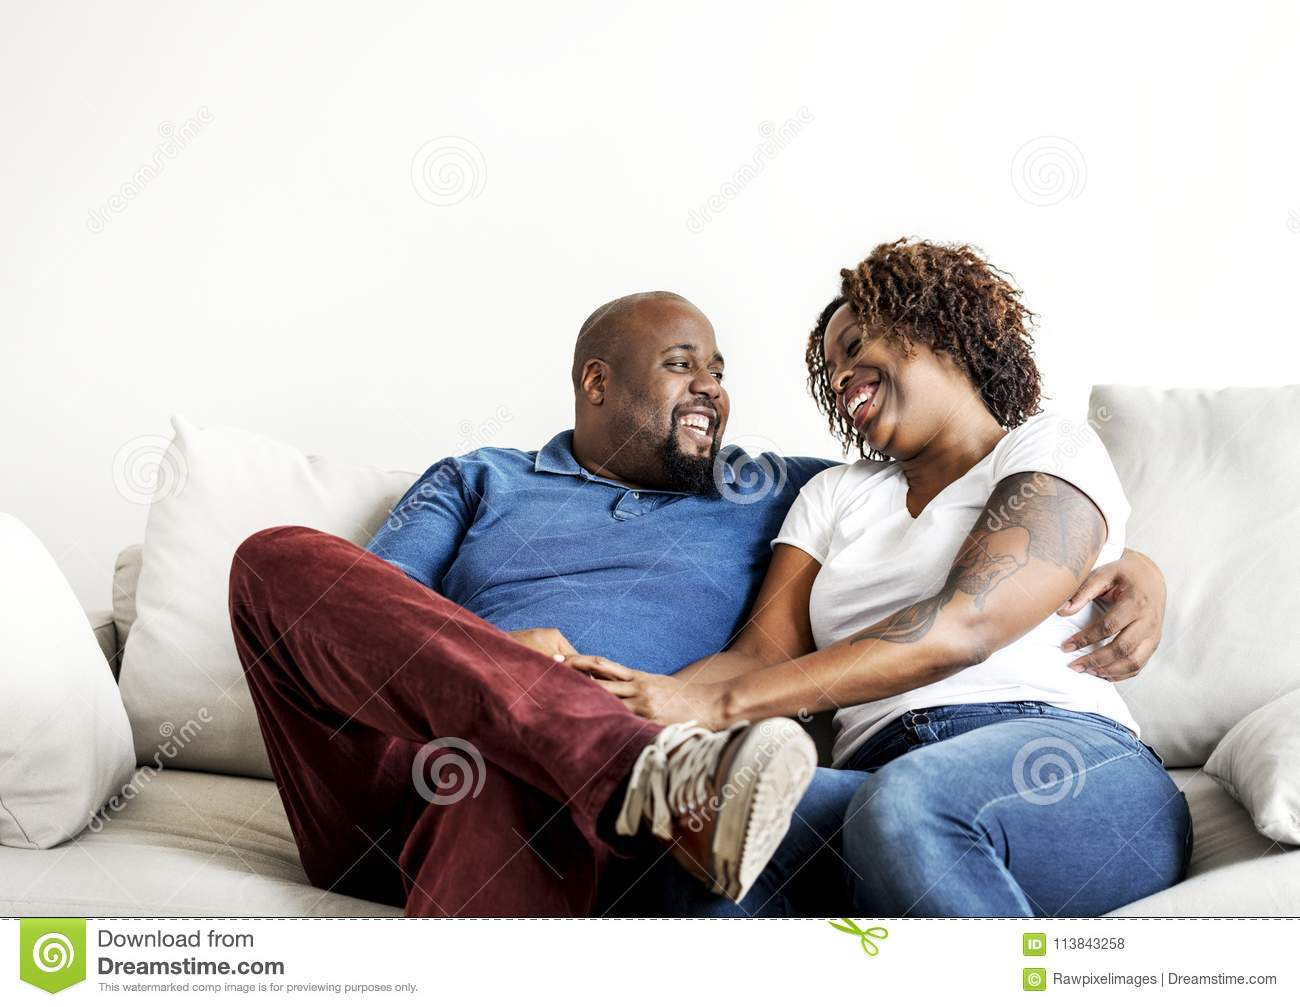 A Cheerful Black Couple Having A Good Time Together